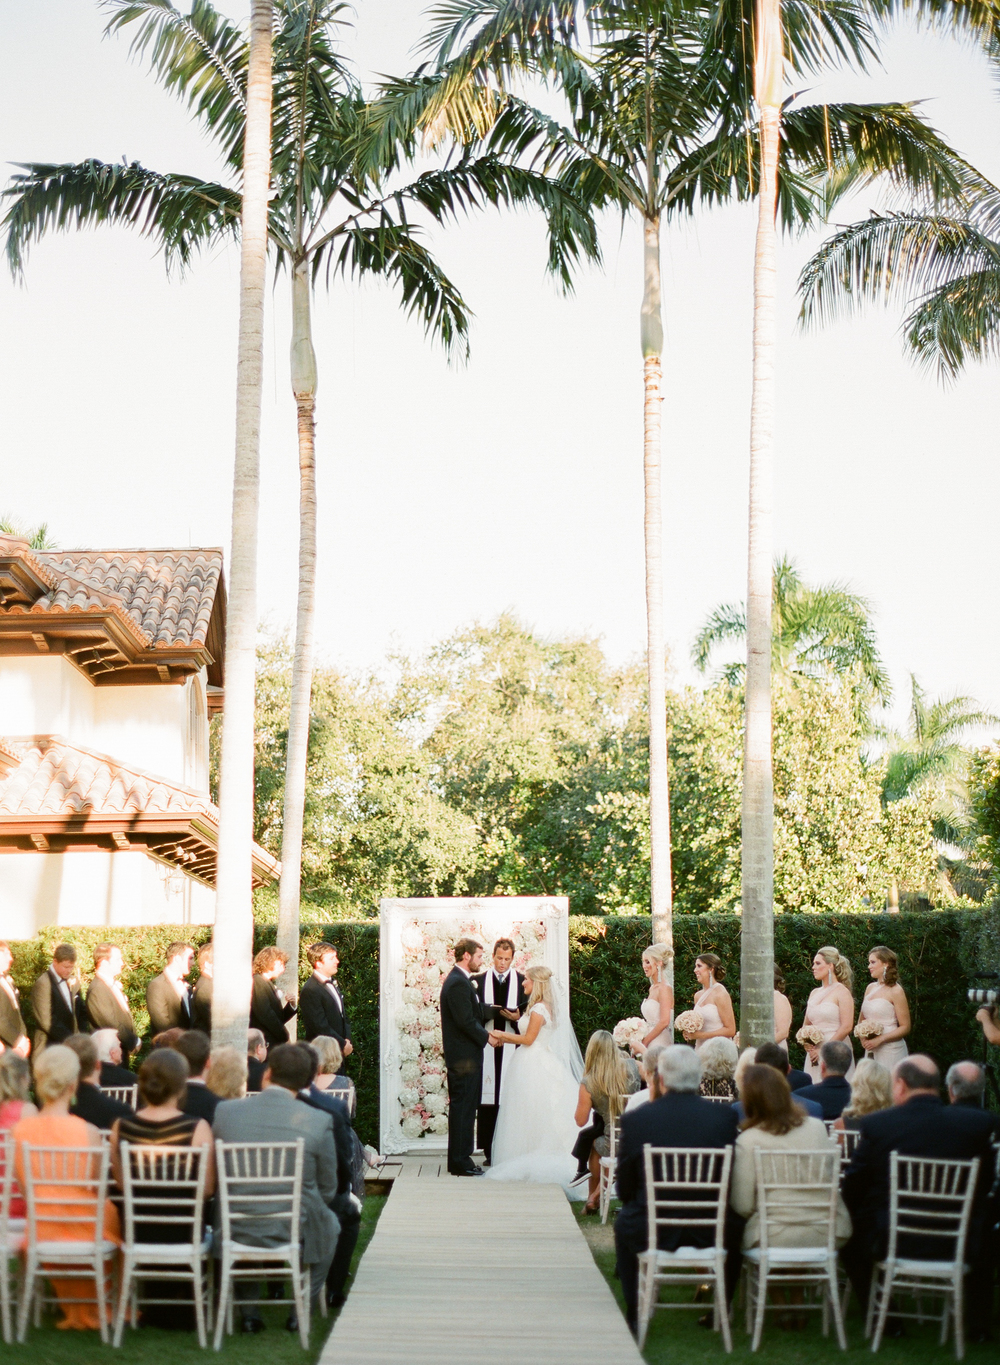 Ceci_New_York_Florida_Wedding_Style_Bride_Watercolor_Real_Custom_Luxury_73.jpg